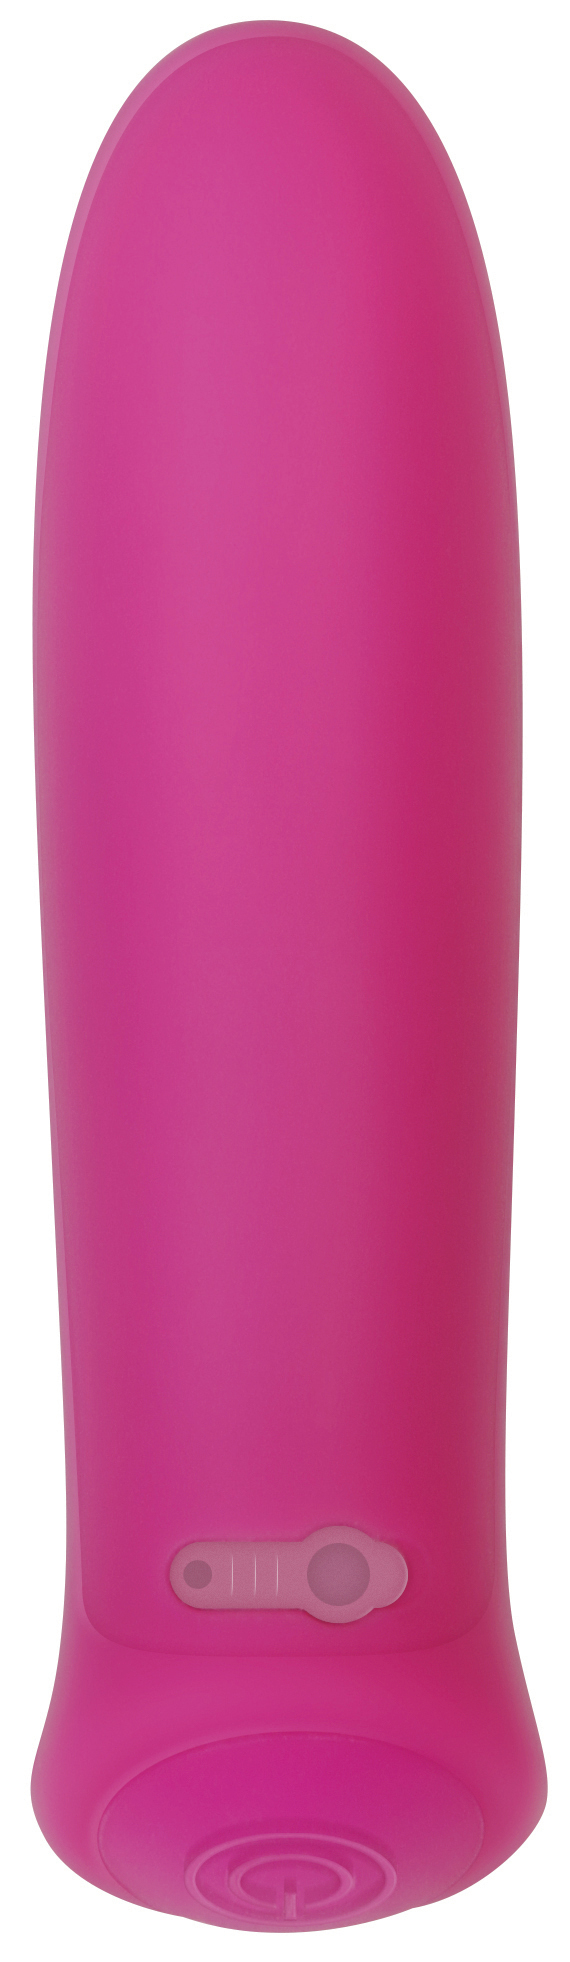 PRETTY-IN-PINK-SILICONE-RECHARGEABLE-I.jpg